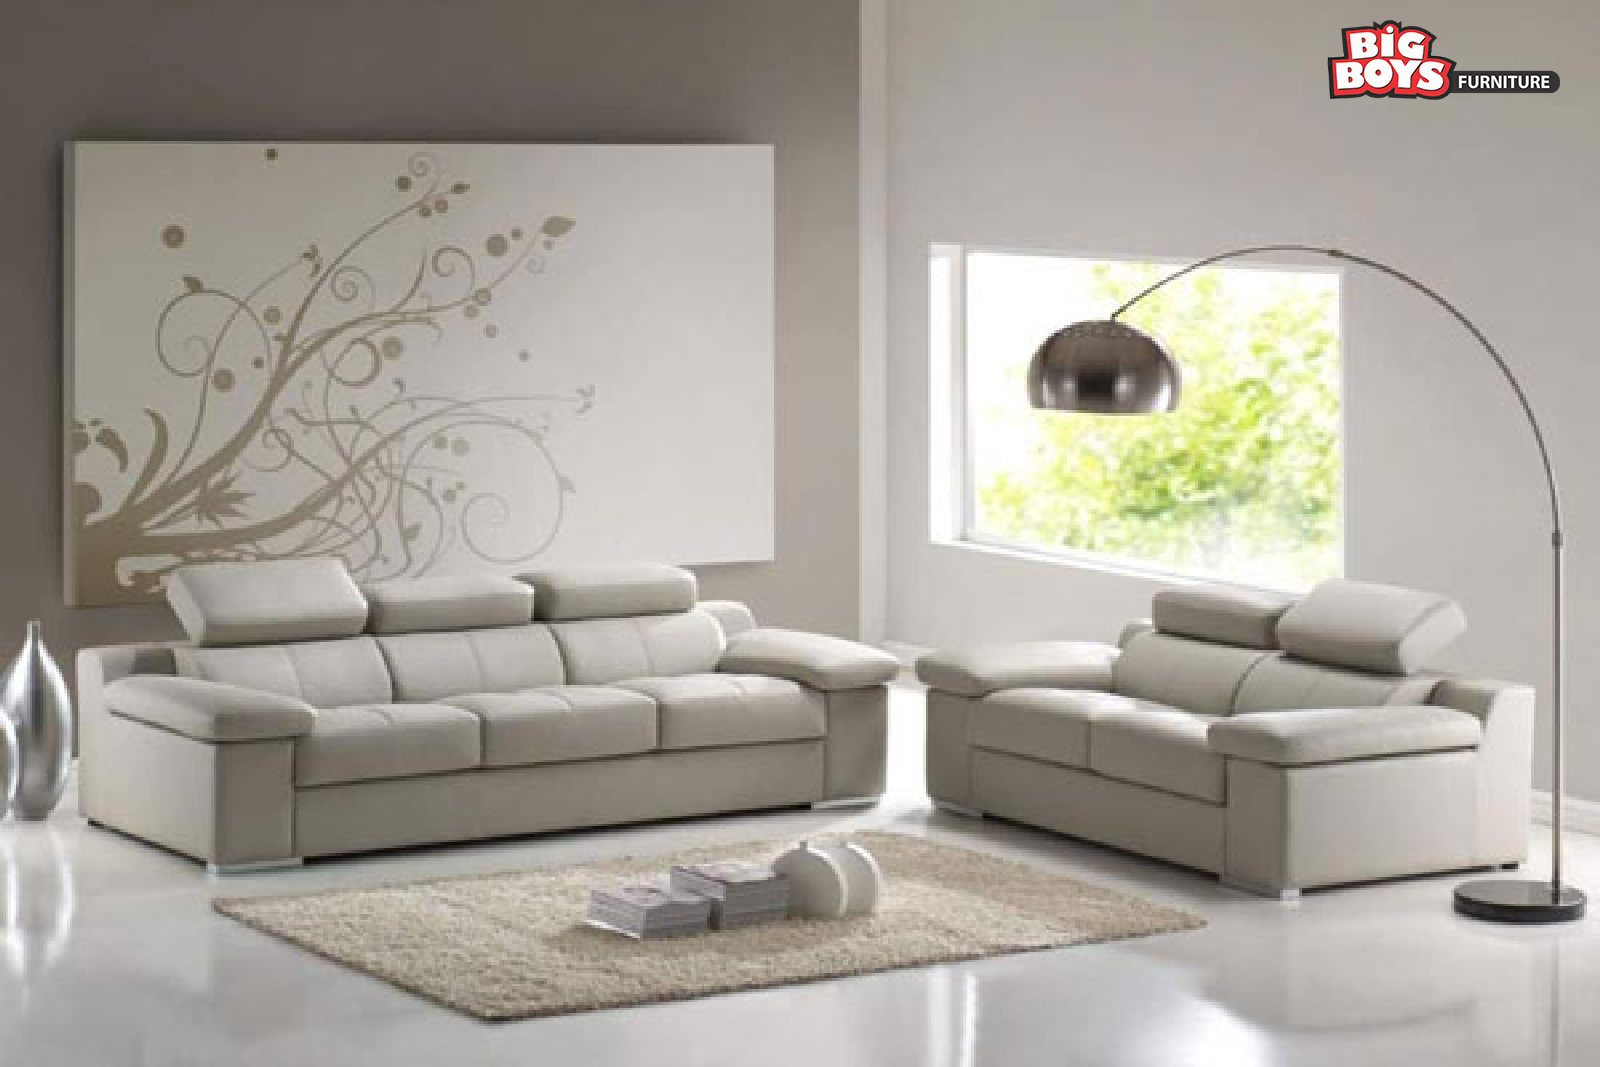 Latest design of Sofa sets at discounted prices